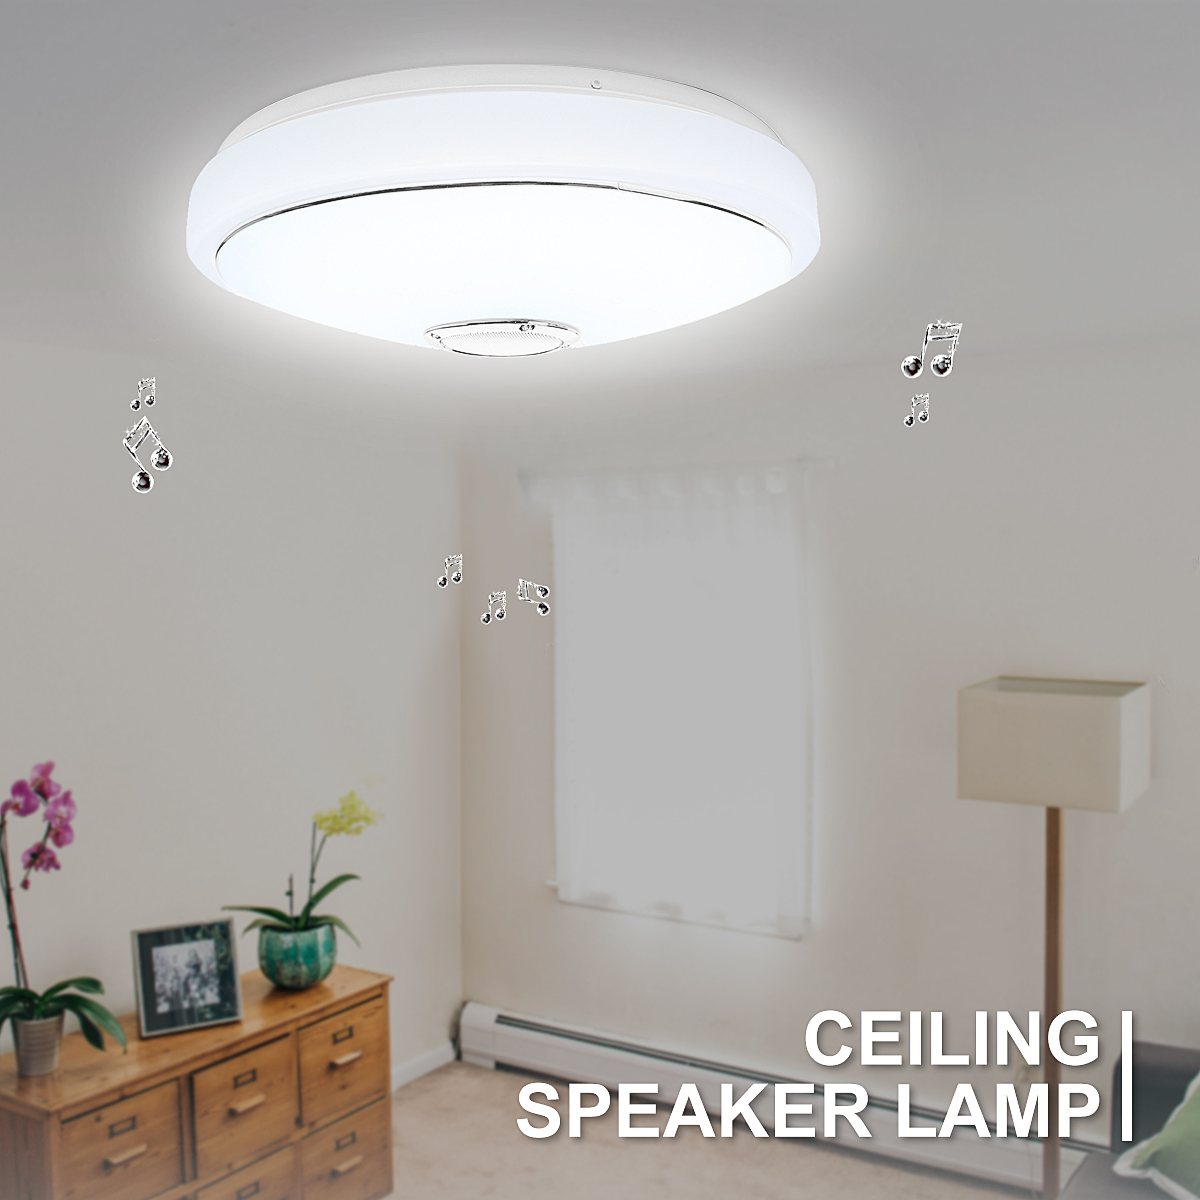 Modern LED Ceiling Light bluetooth Speaker Music 48 Bulb APP Phone Remote Control RGB Ceiling Speakers Lamp Indoor Room LightingModern LED Ceiling Light bluetooth Speaker Music 48 Bulb APP Phone Remote Control RGB Ceiling Speakers Lamp Indoor Room Lighting